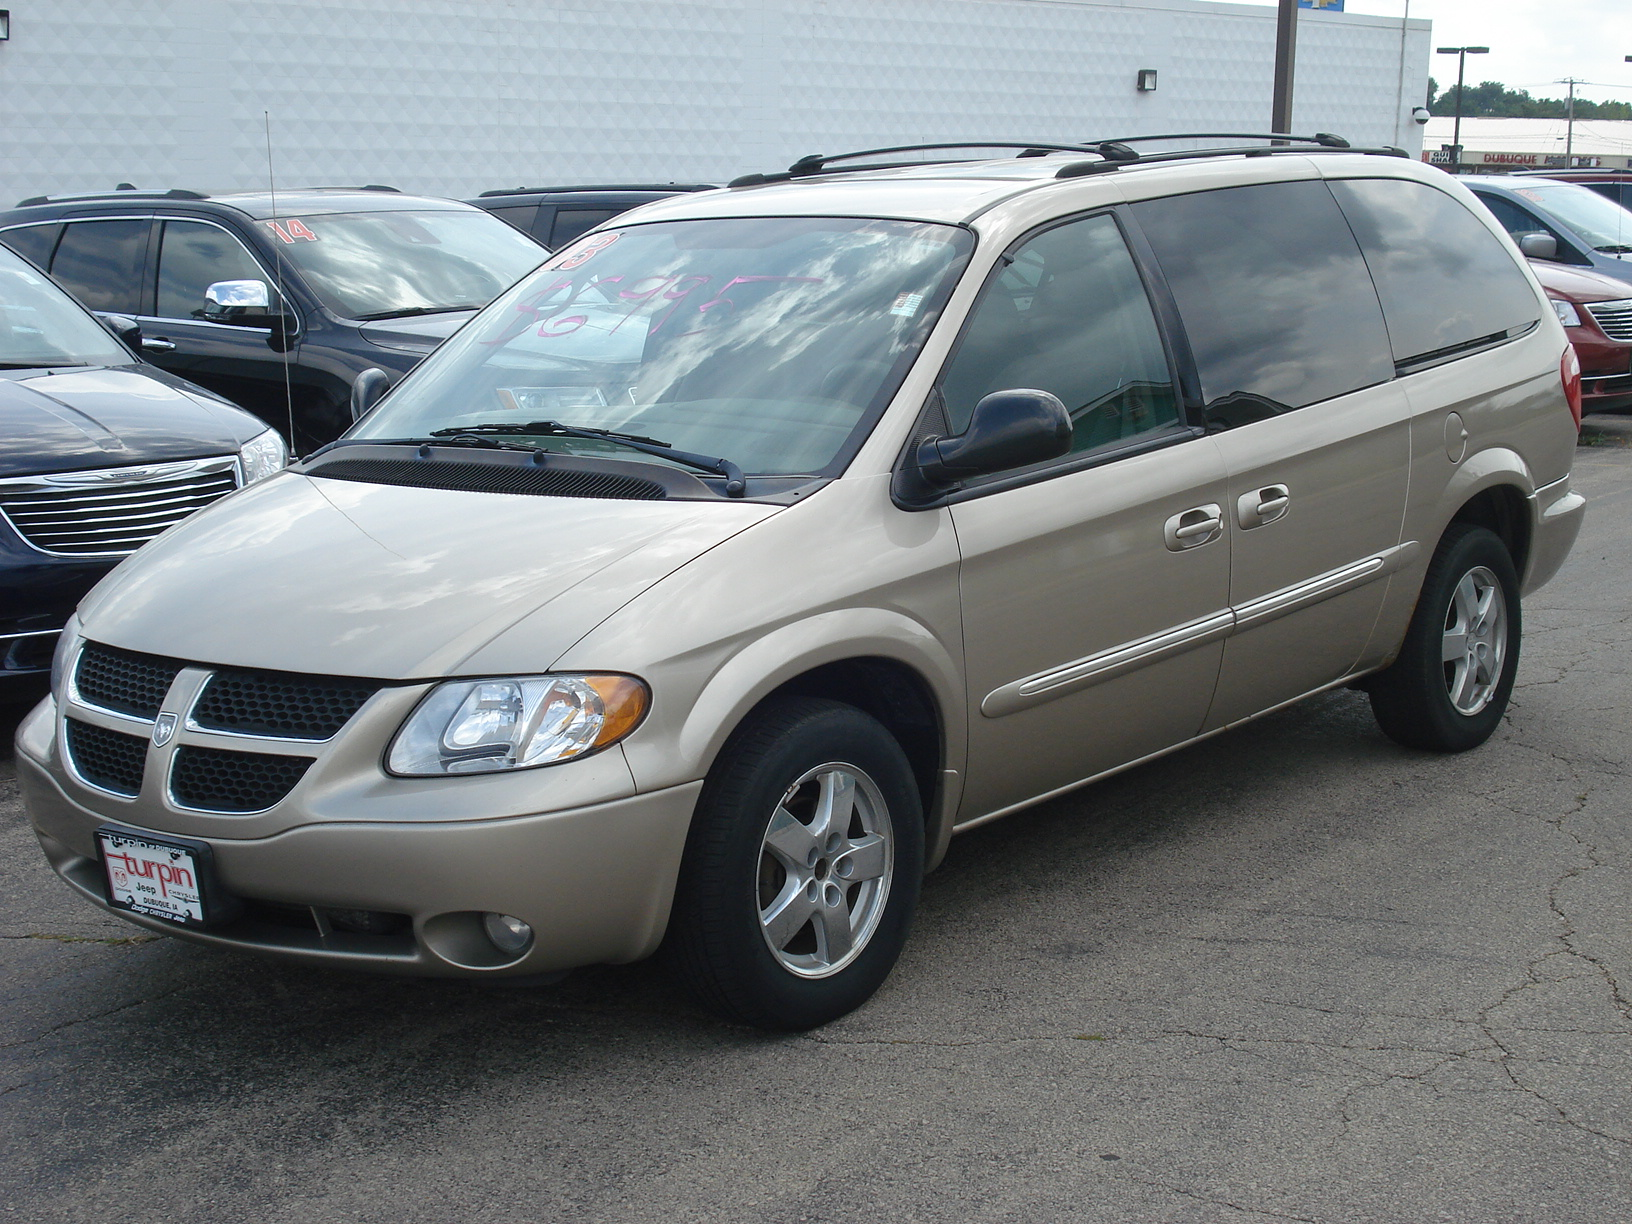 2003 dodge grand caravan information and photos zombiedrive. Cars Review. Best American Auto & Cars Review